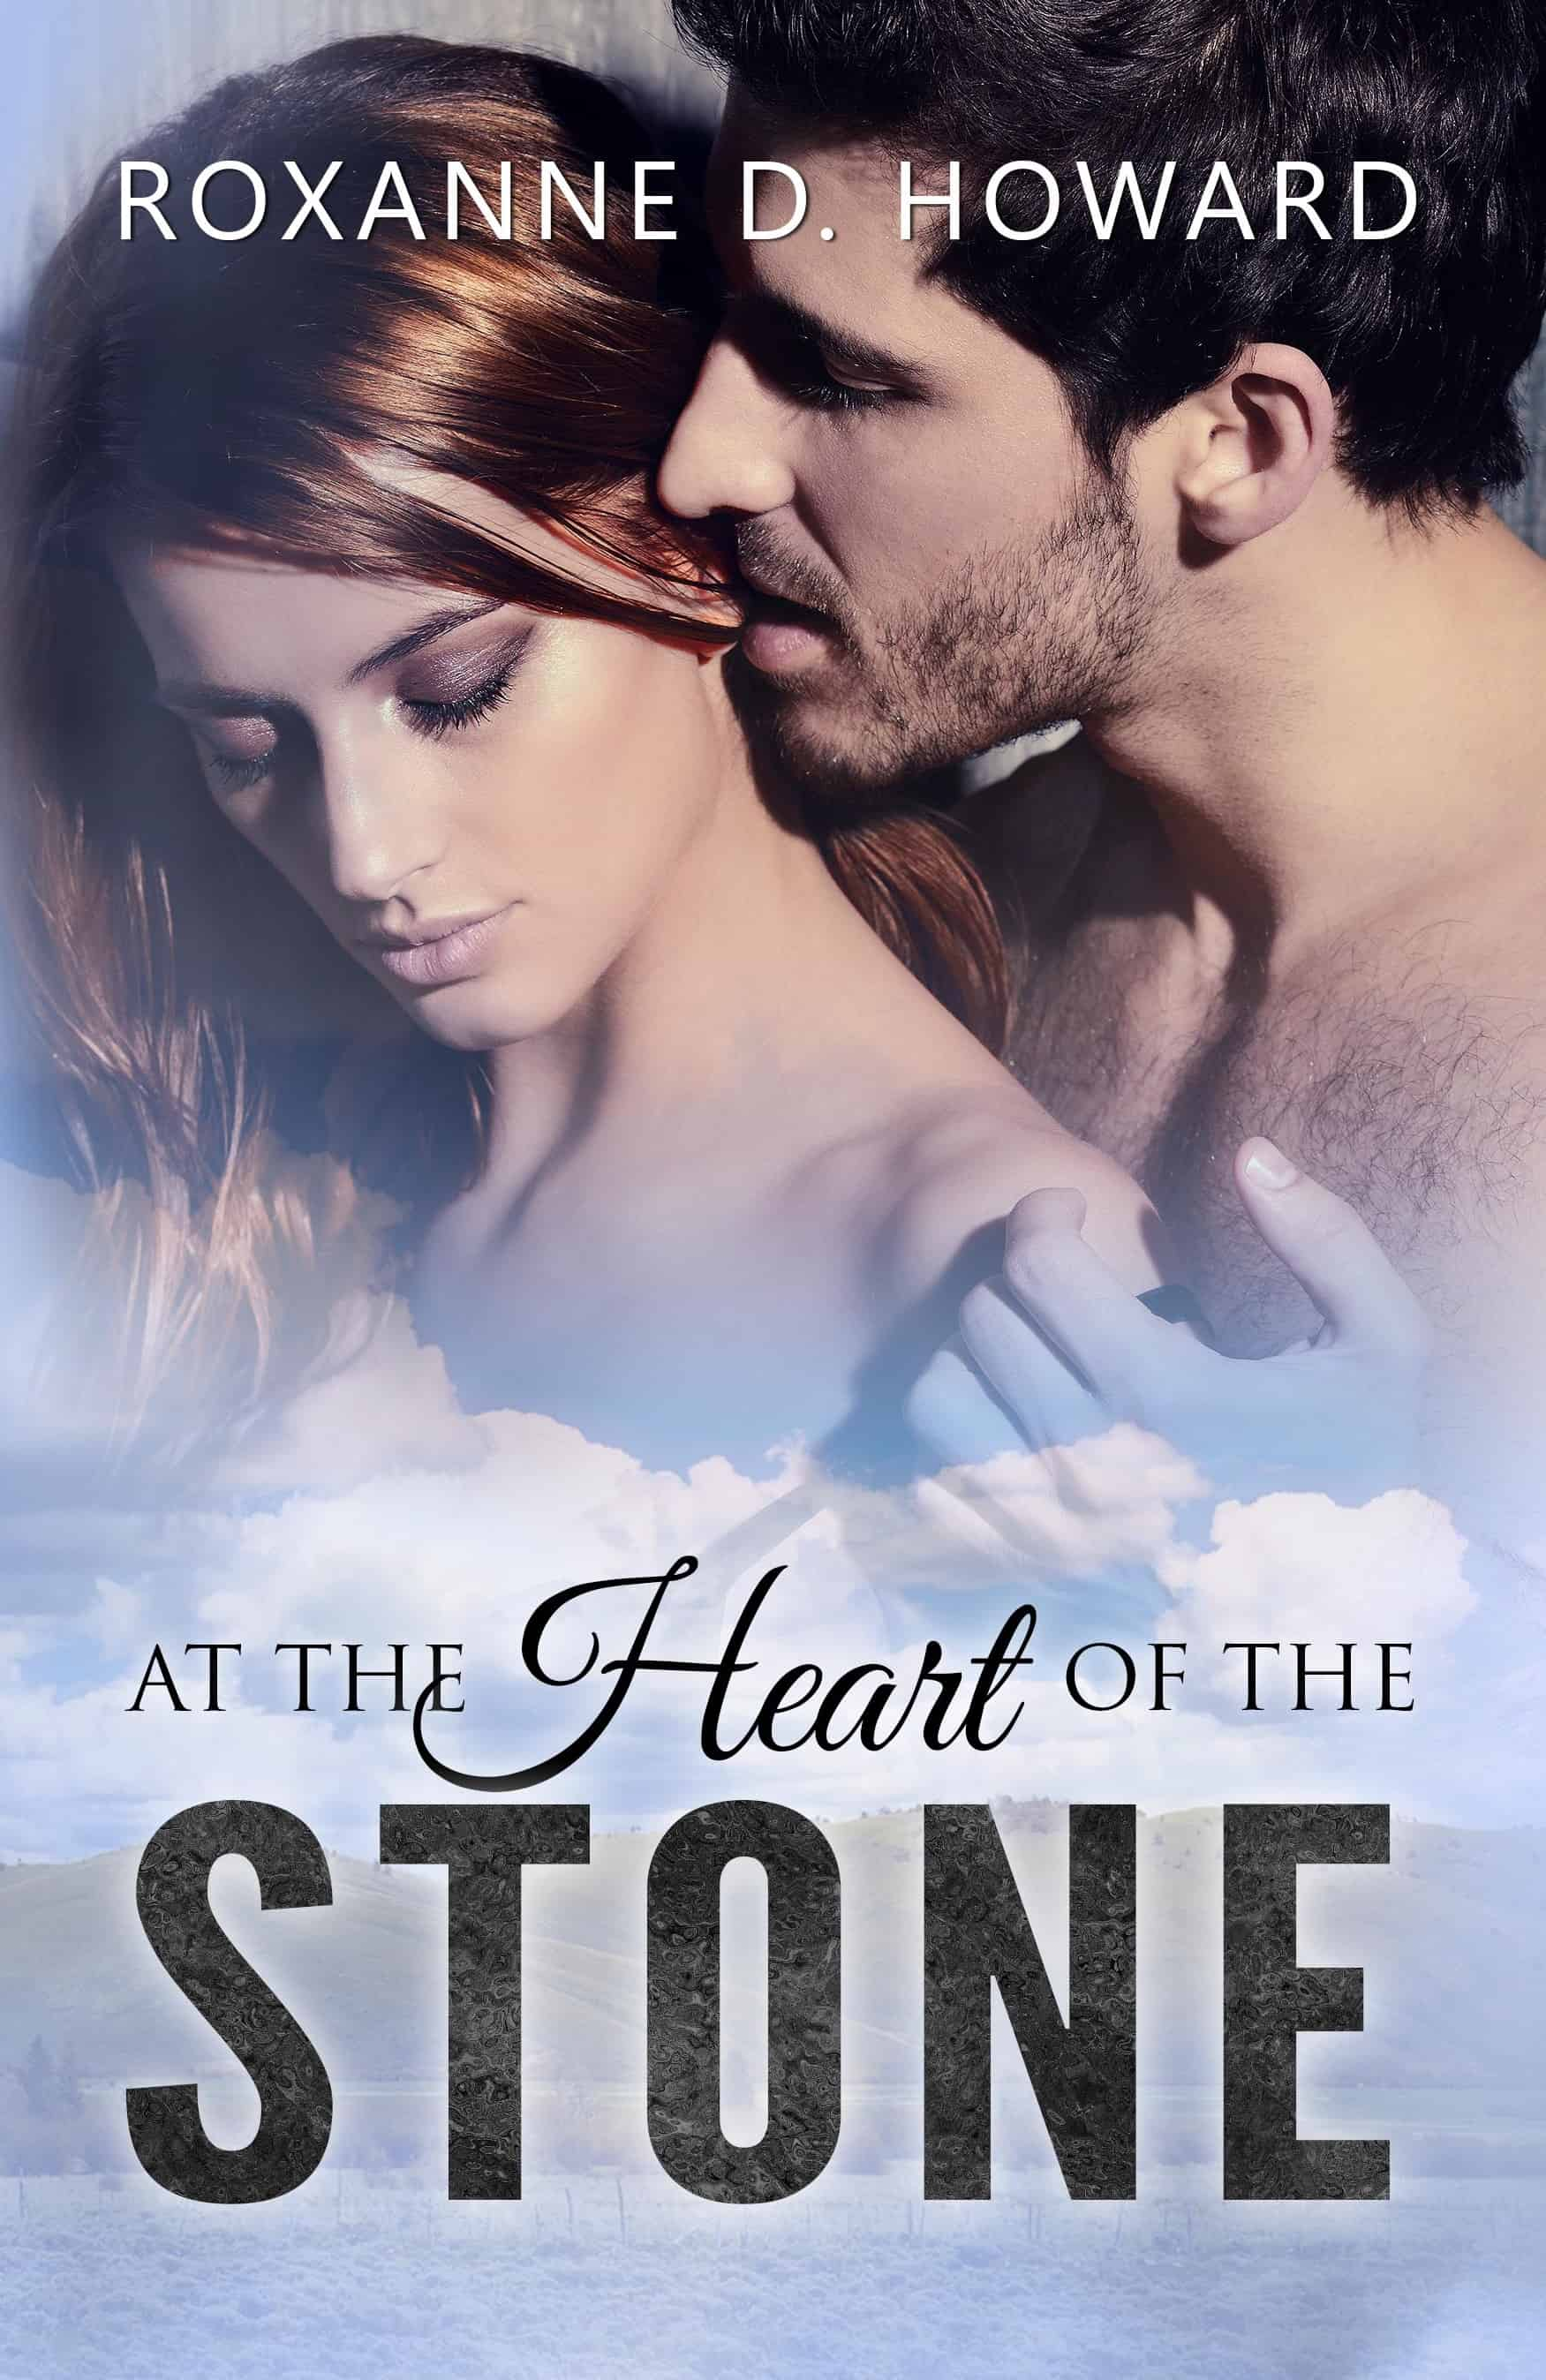 @RoxanneDHoward is offering a great deal: autographed copies of At the Heart of the Stone for $10. #ContemporaryRomance #PrintBook